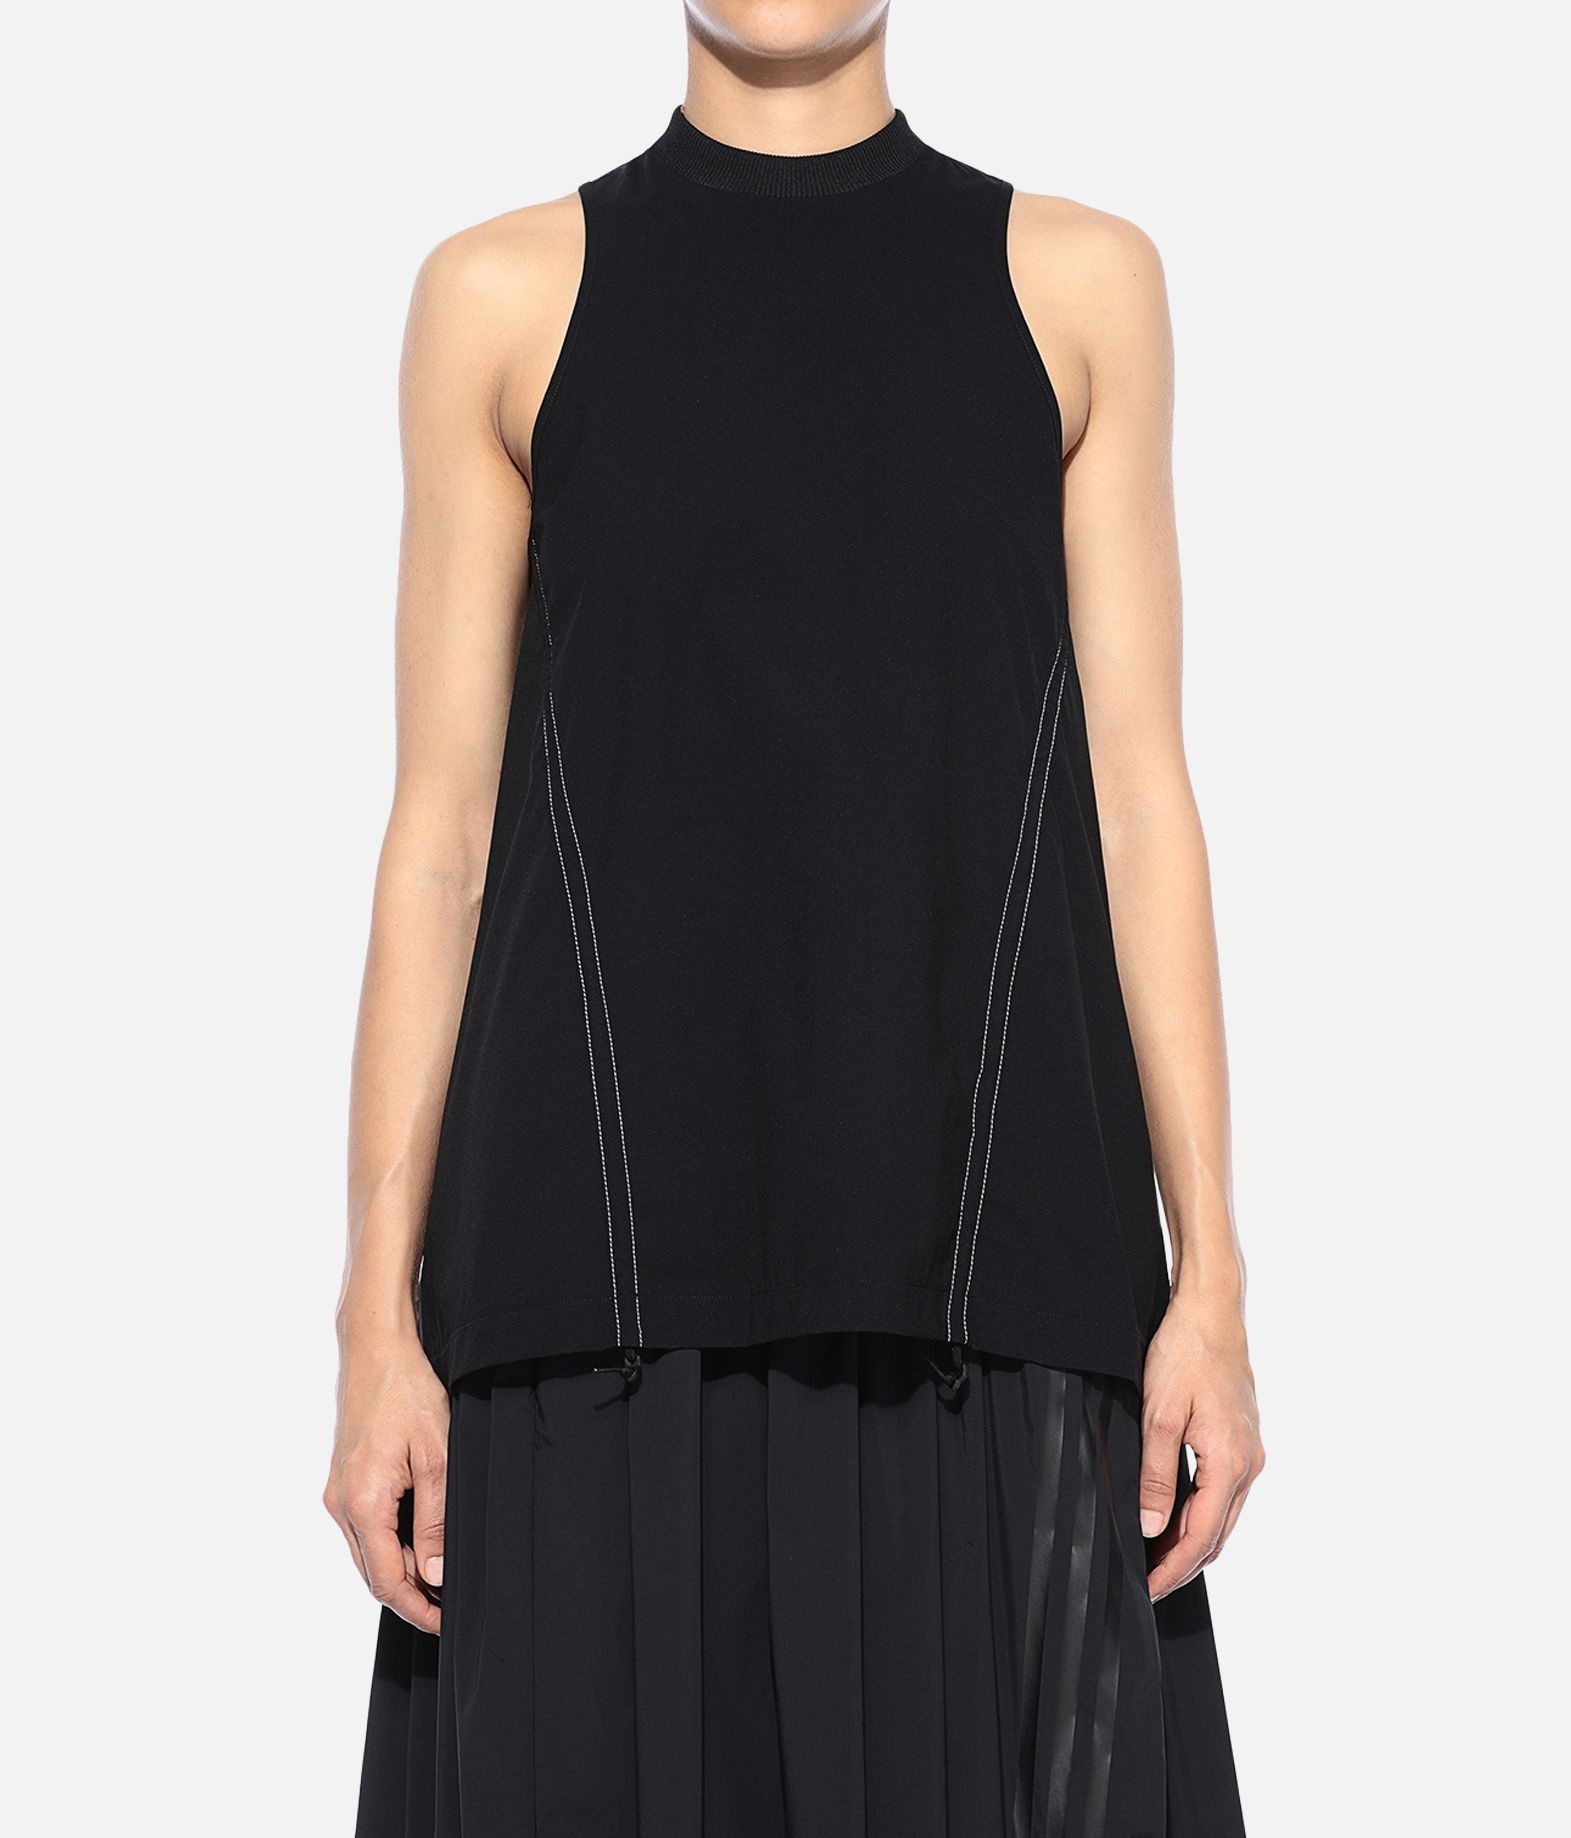 Y-3 Y-3 Light 3-Stripes Tank Top Top Woman r